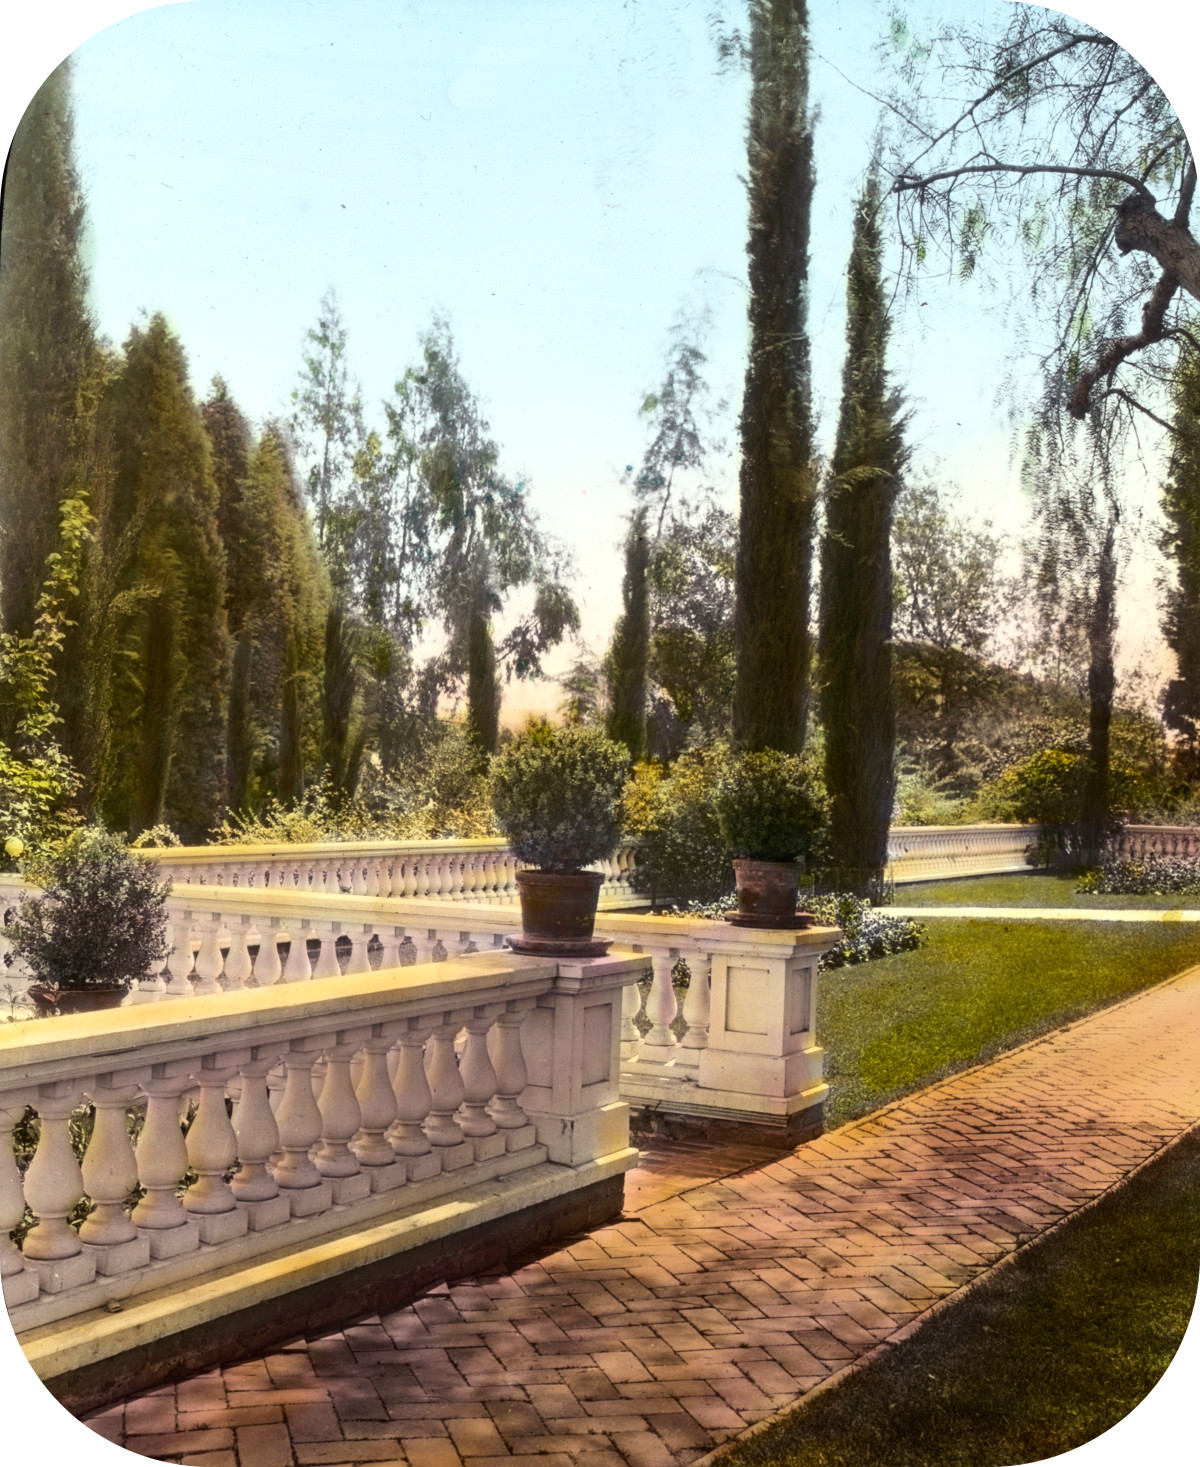 Mrs. Francis Lemoine Loring house, 700 South San Rafael Avenue, San Rafael Heights, Pasadena, California. Terrace balustrade